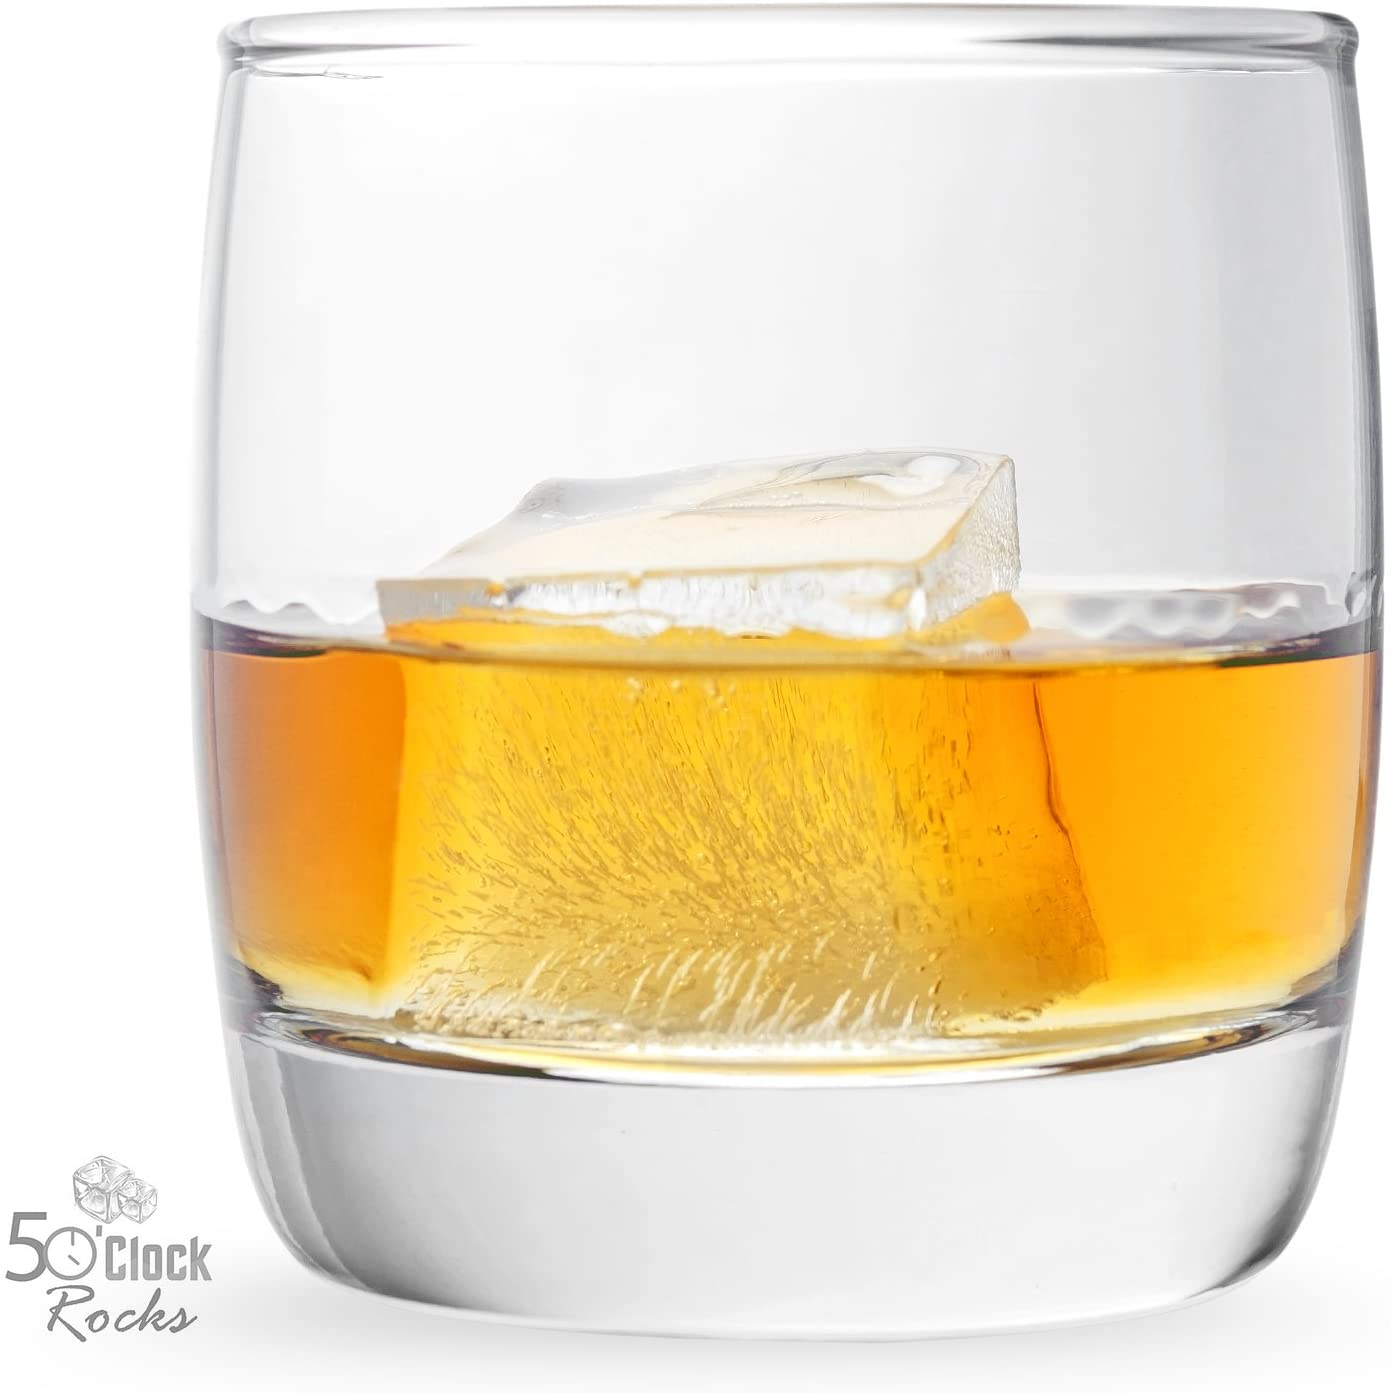 20 Best Scotch Glasses: Buying Guide and Reviews